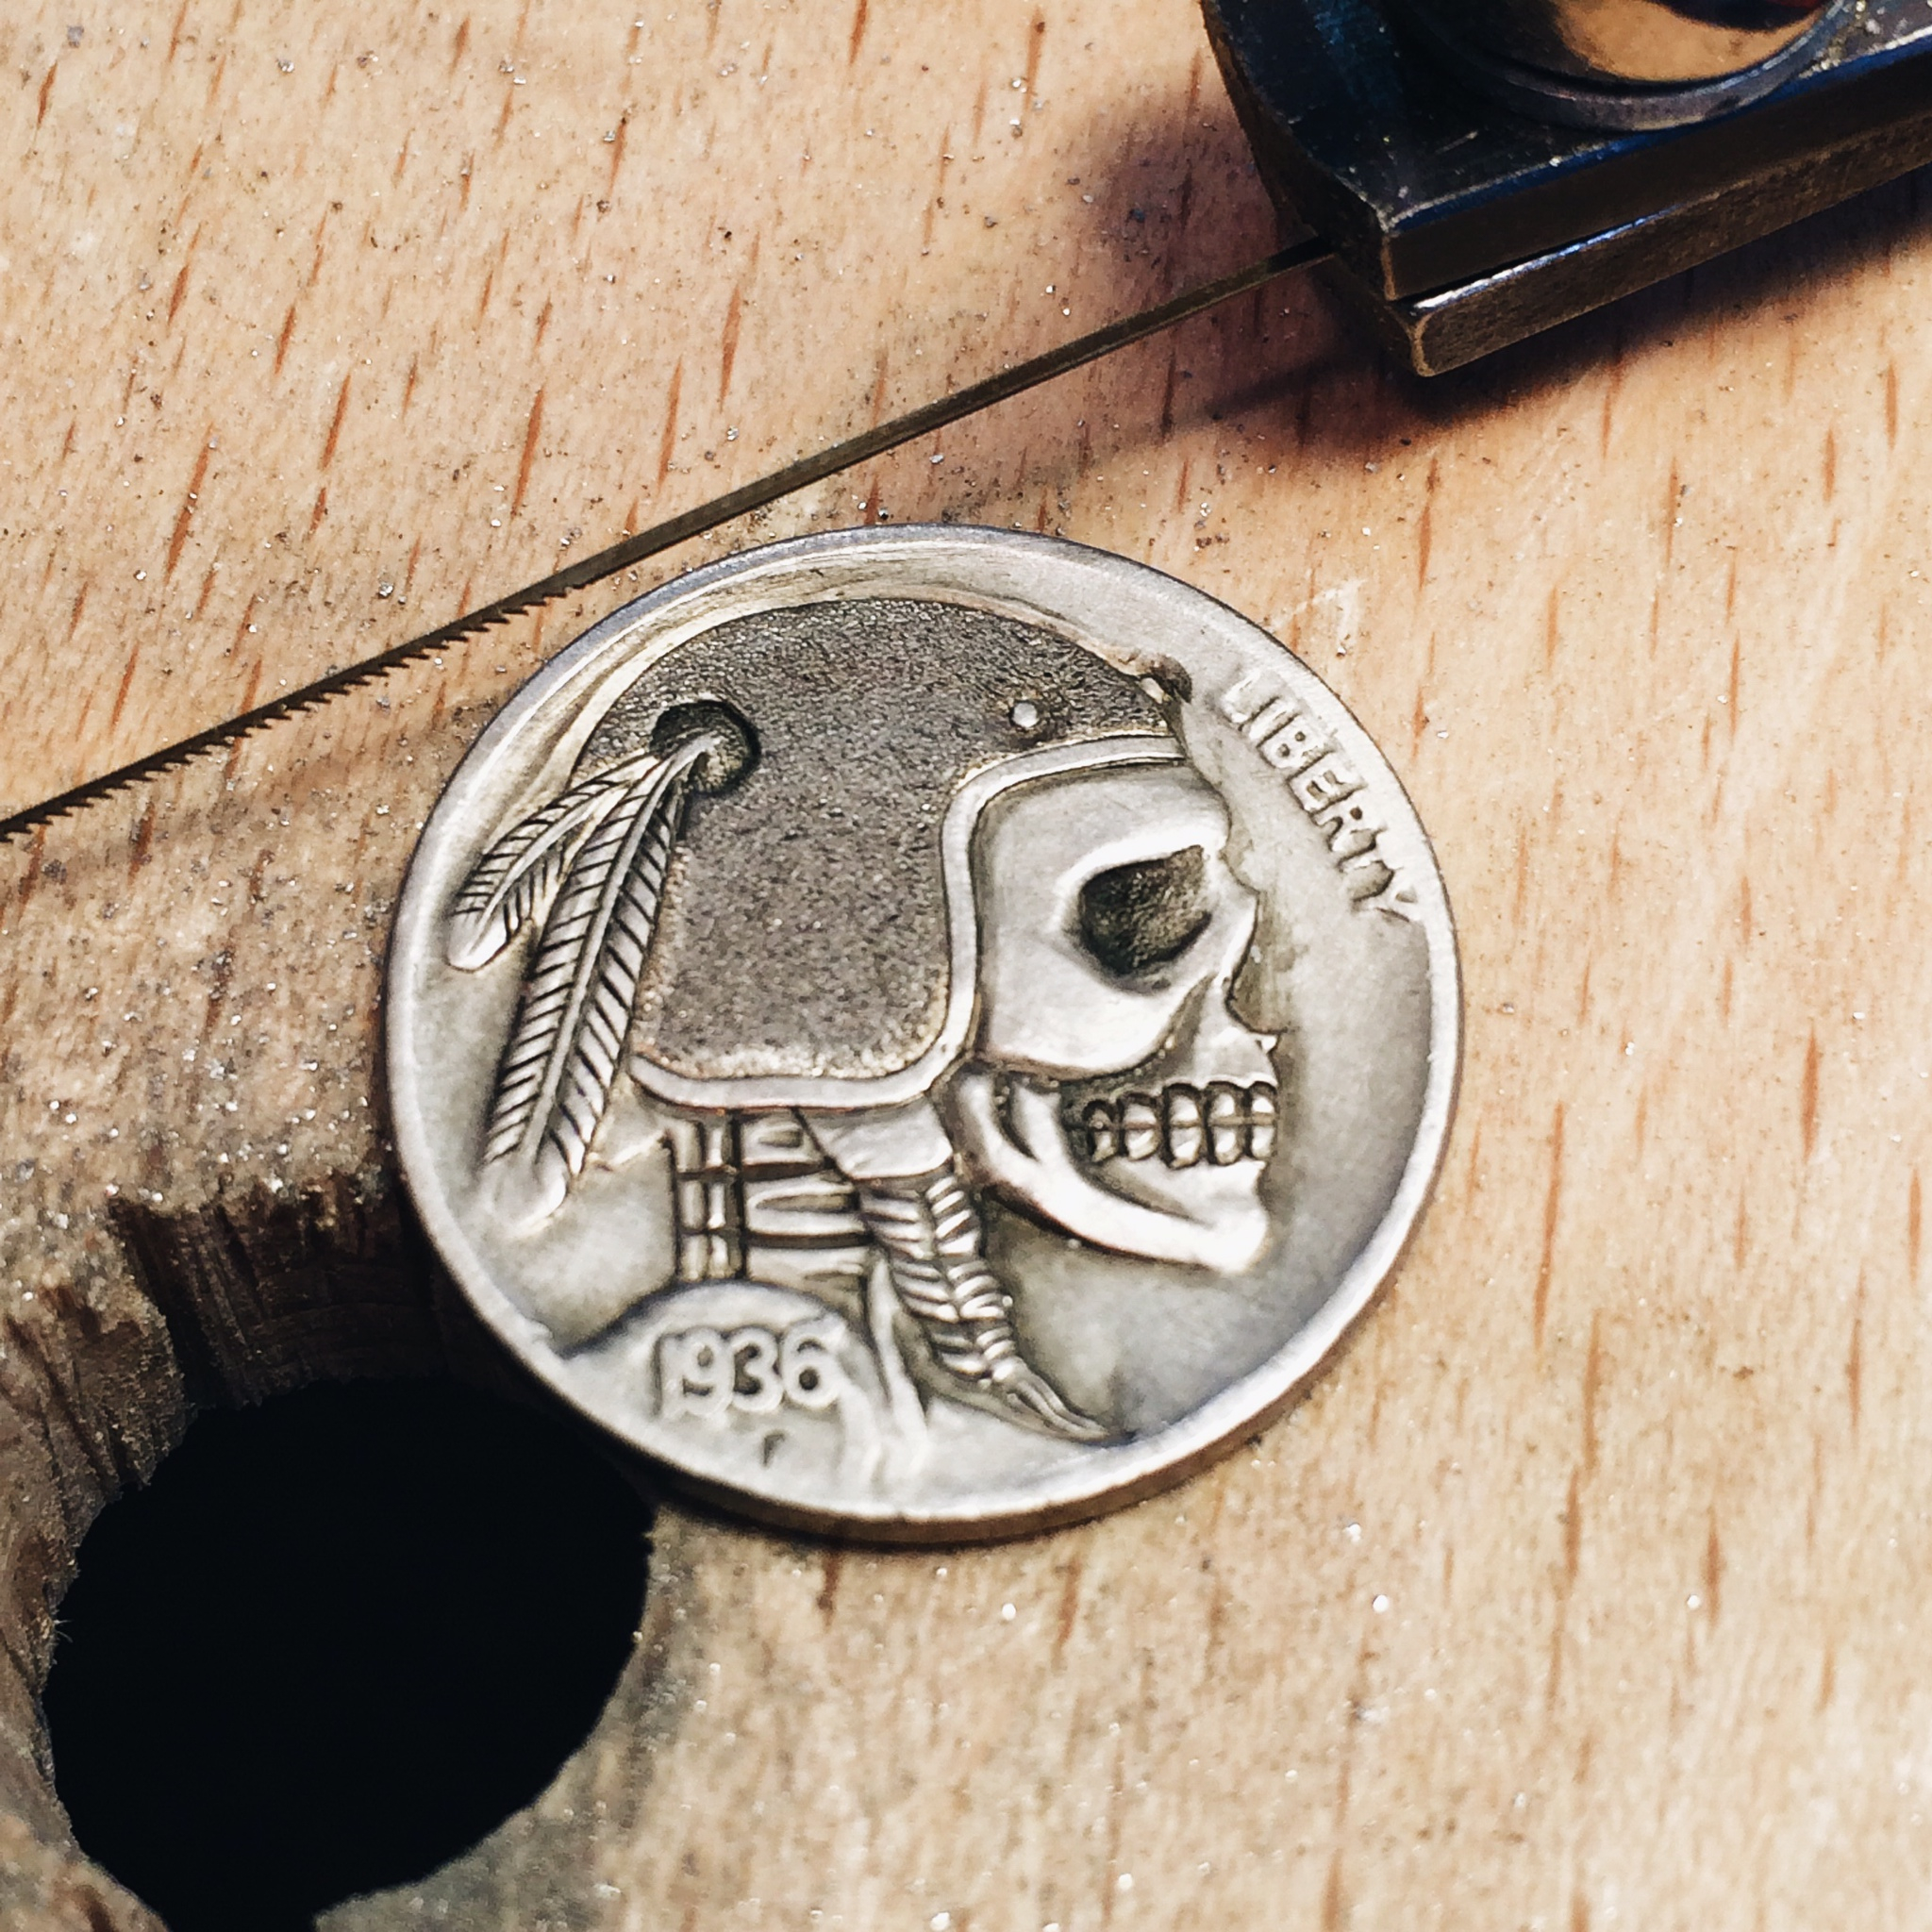 1 The fresh carved nickel